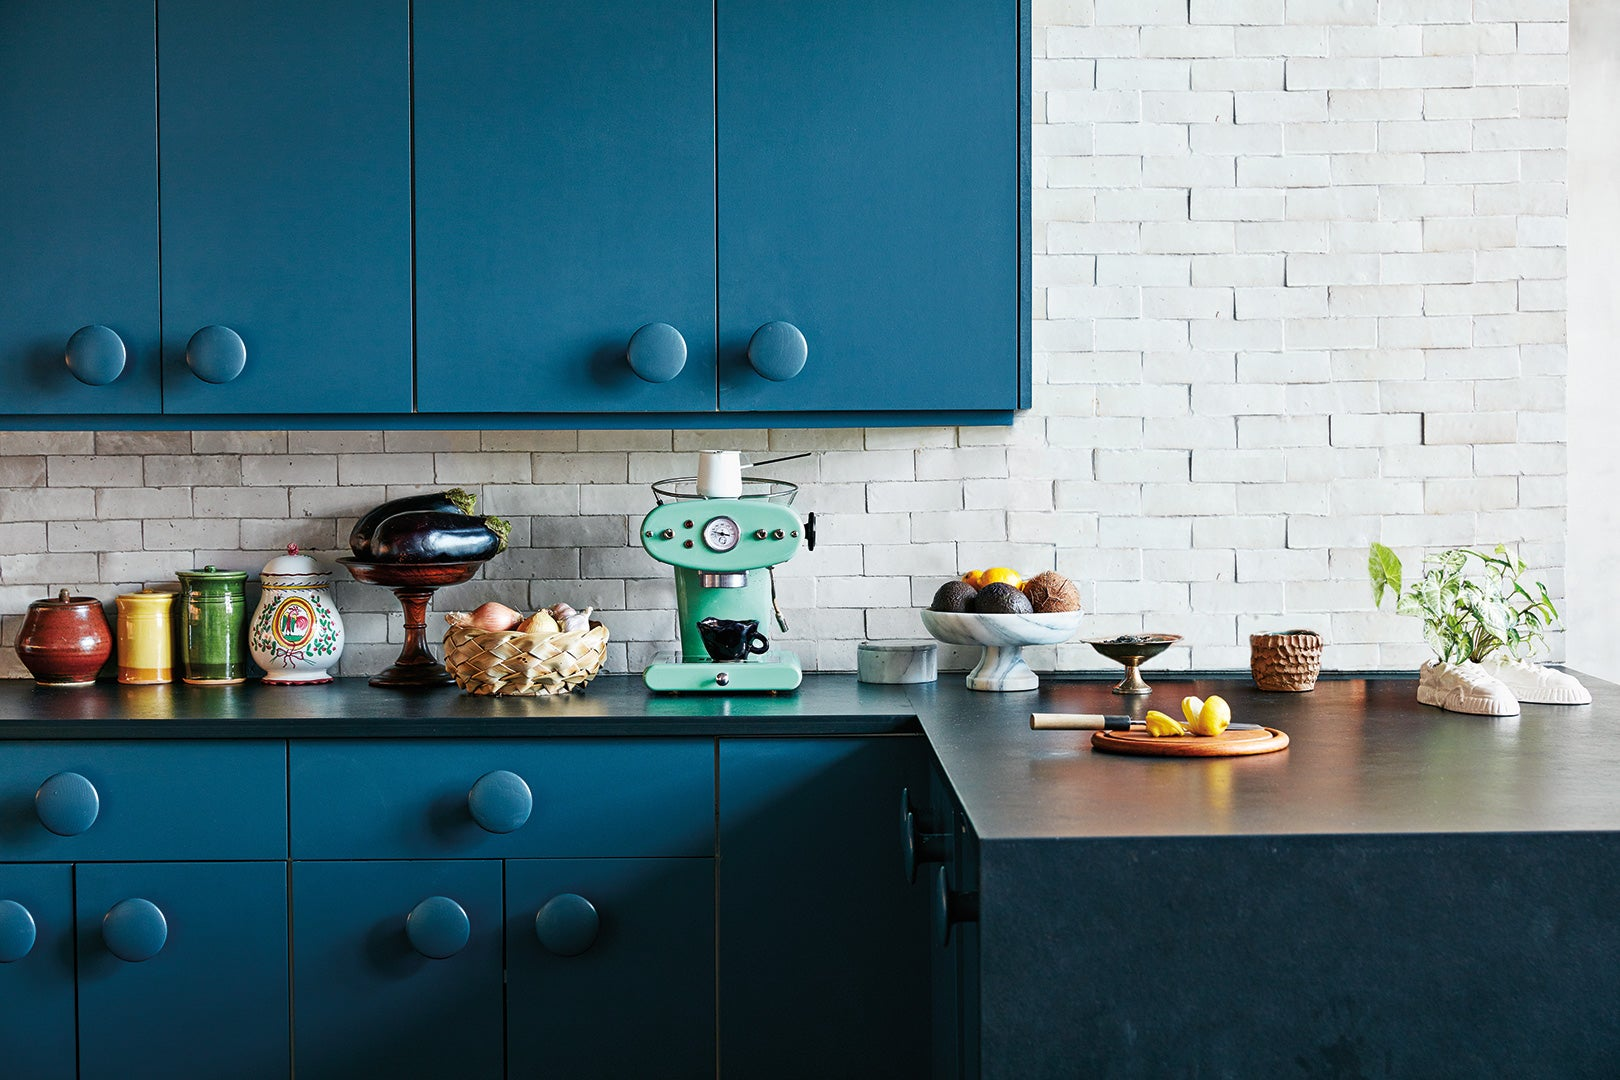 blue kitchen with blue large knobs on the doors